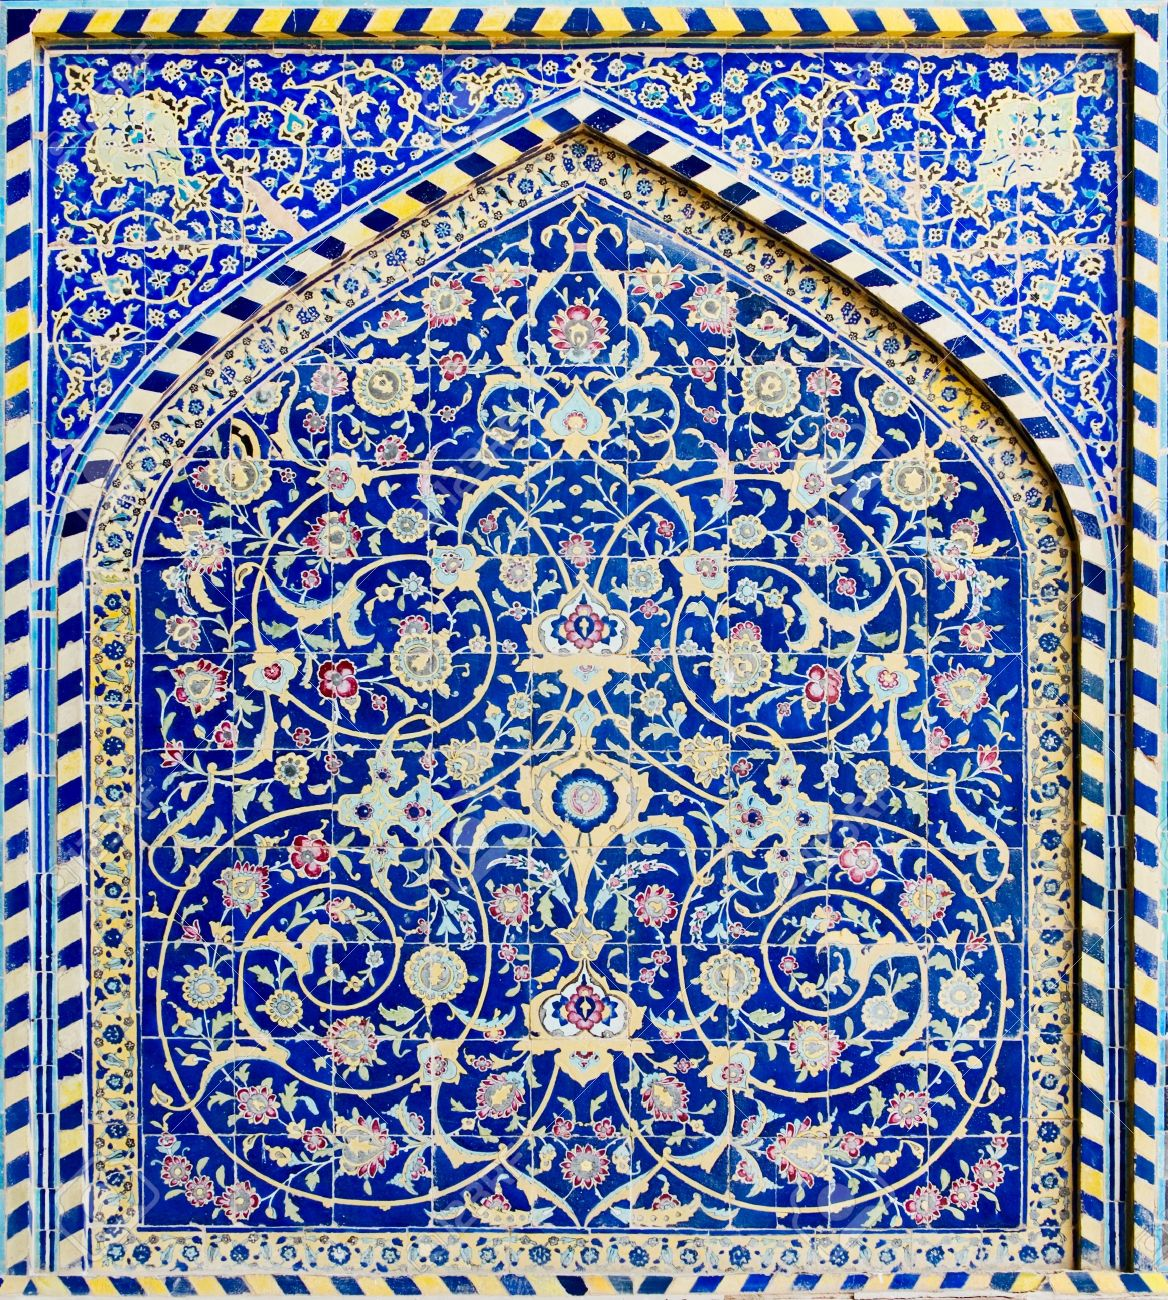 tiled background, oriental ornaments from Isfahan Mosque, Iran Stock Photo - 950578